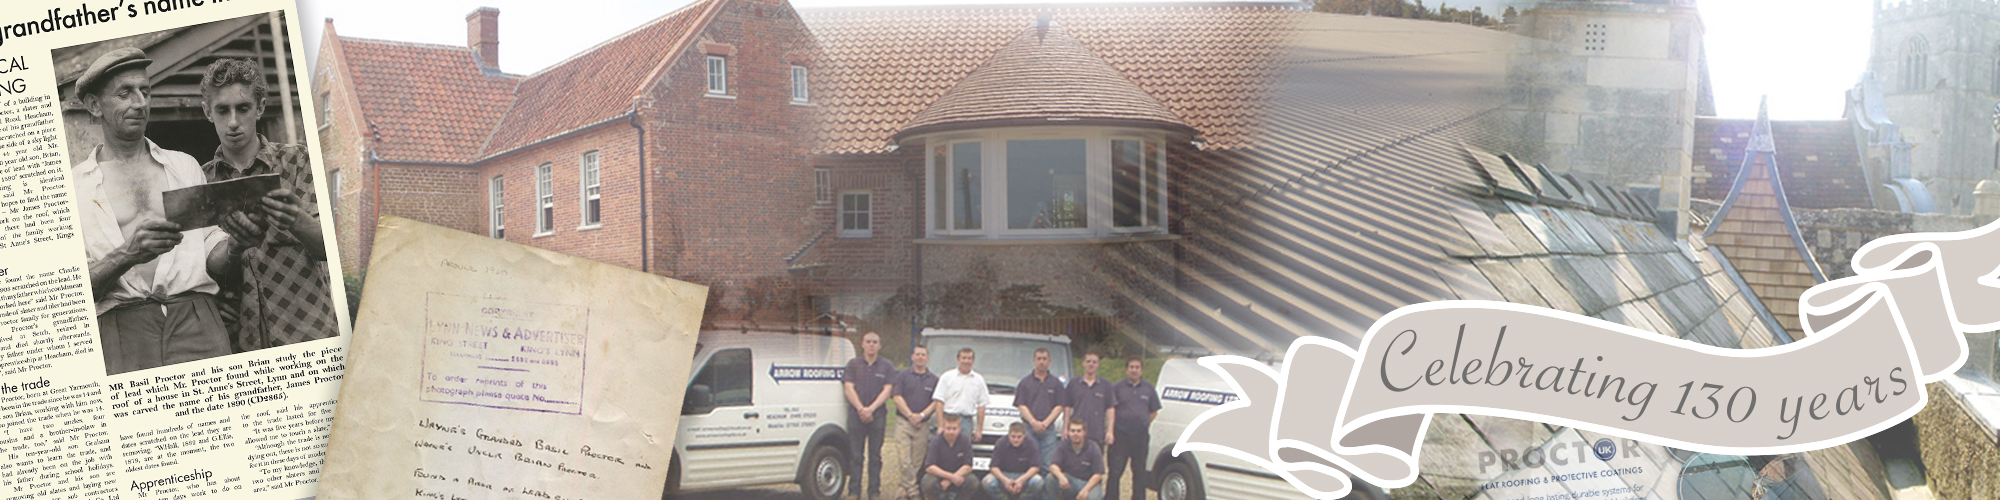 Celebrating 130 Years In Roofing Proctor Roofing